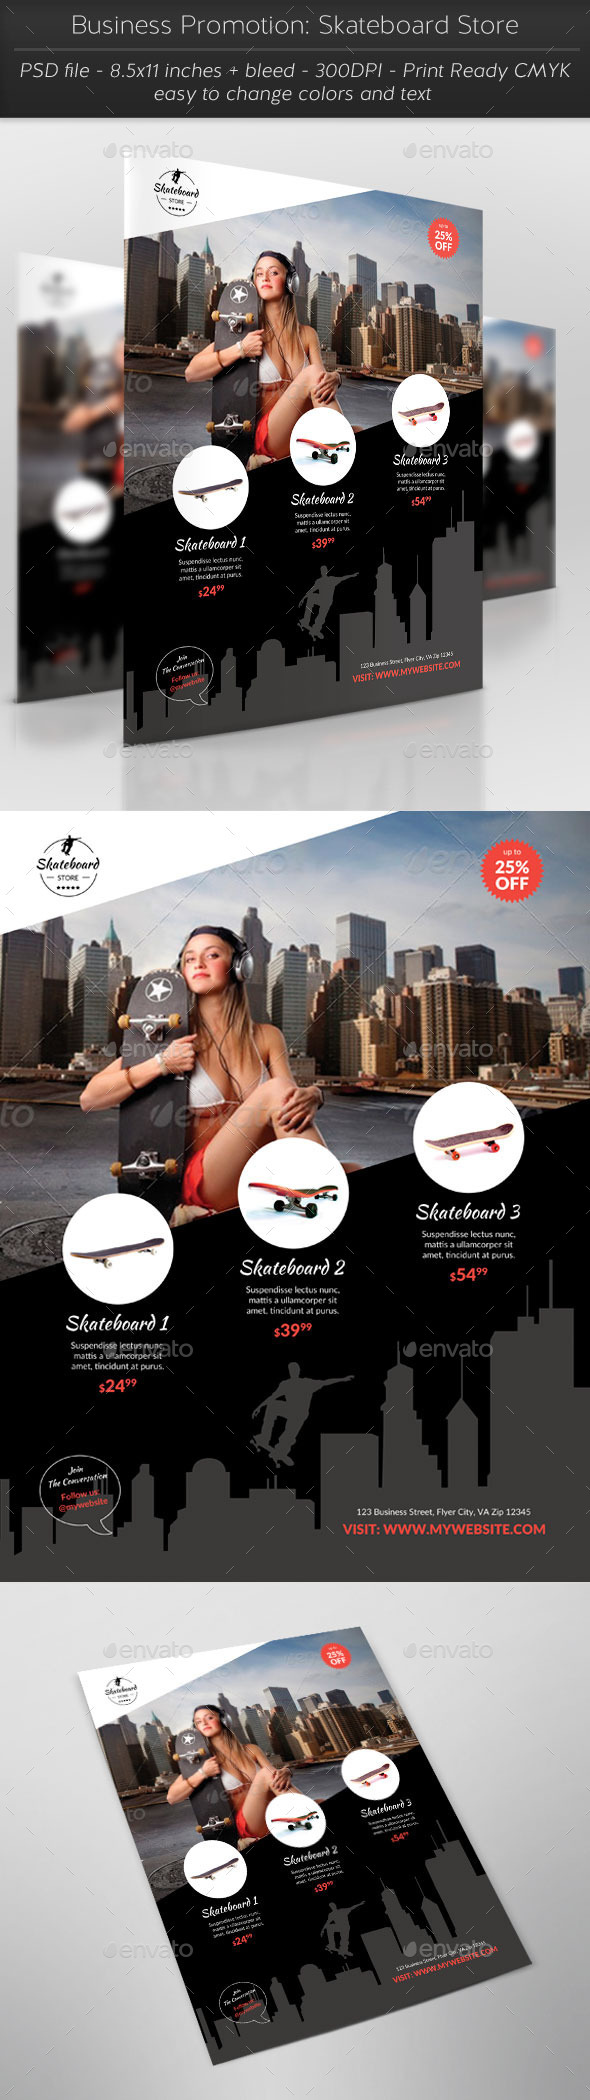 GraphicRiver Business Promotion Skateboard Store 11532953